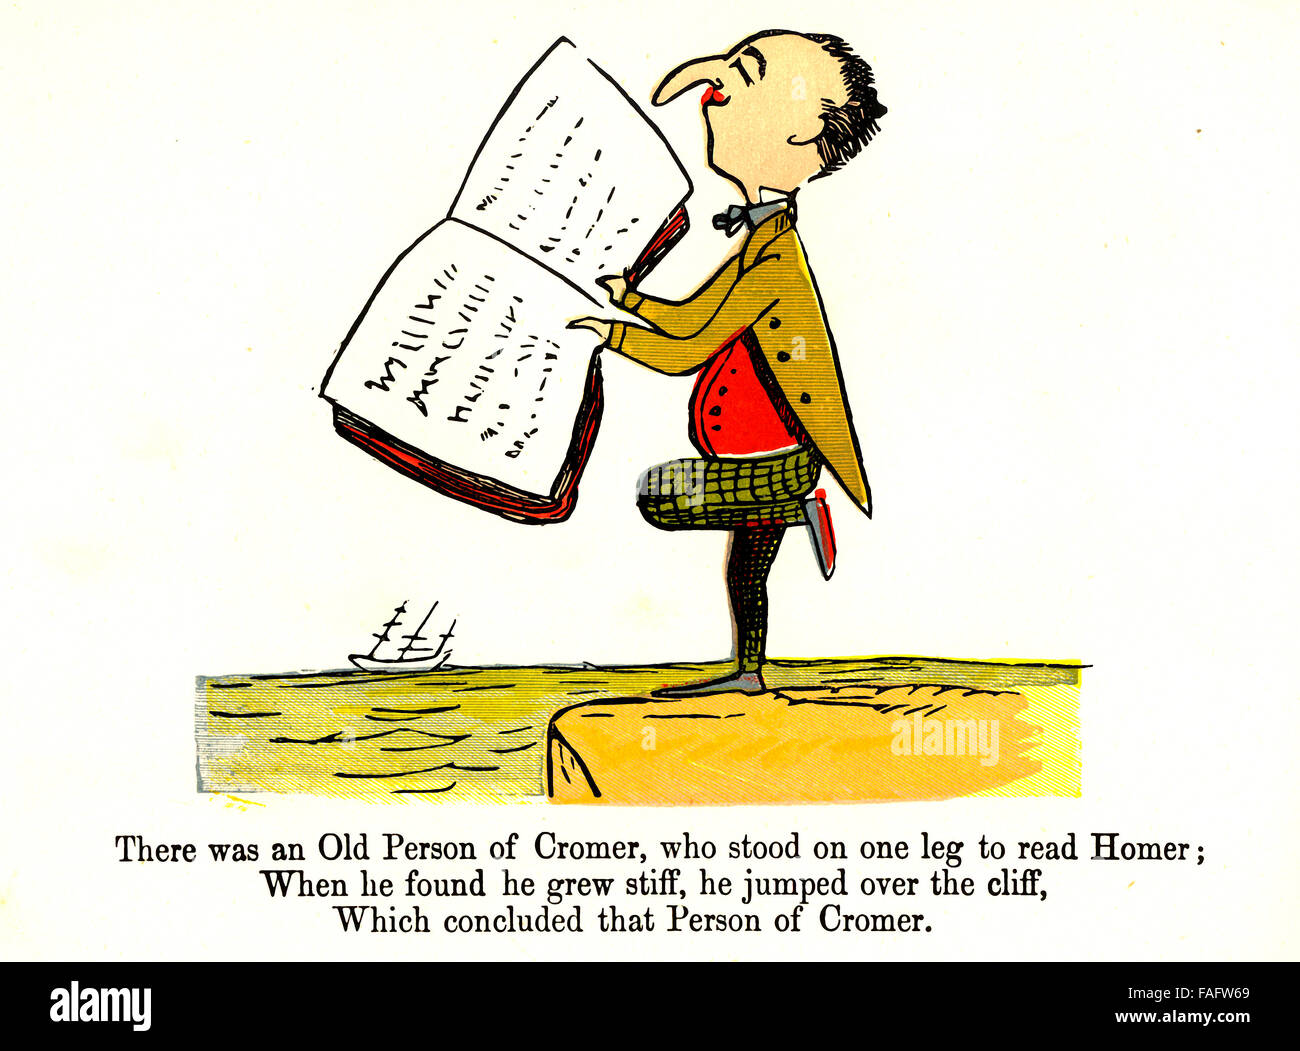 There was an Old Person of Cromer - an illustrated limerick by Edward Lear - Stock Image